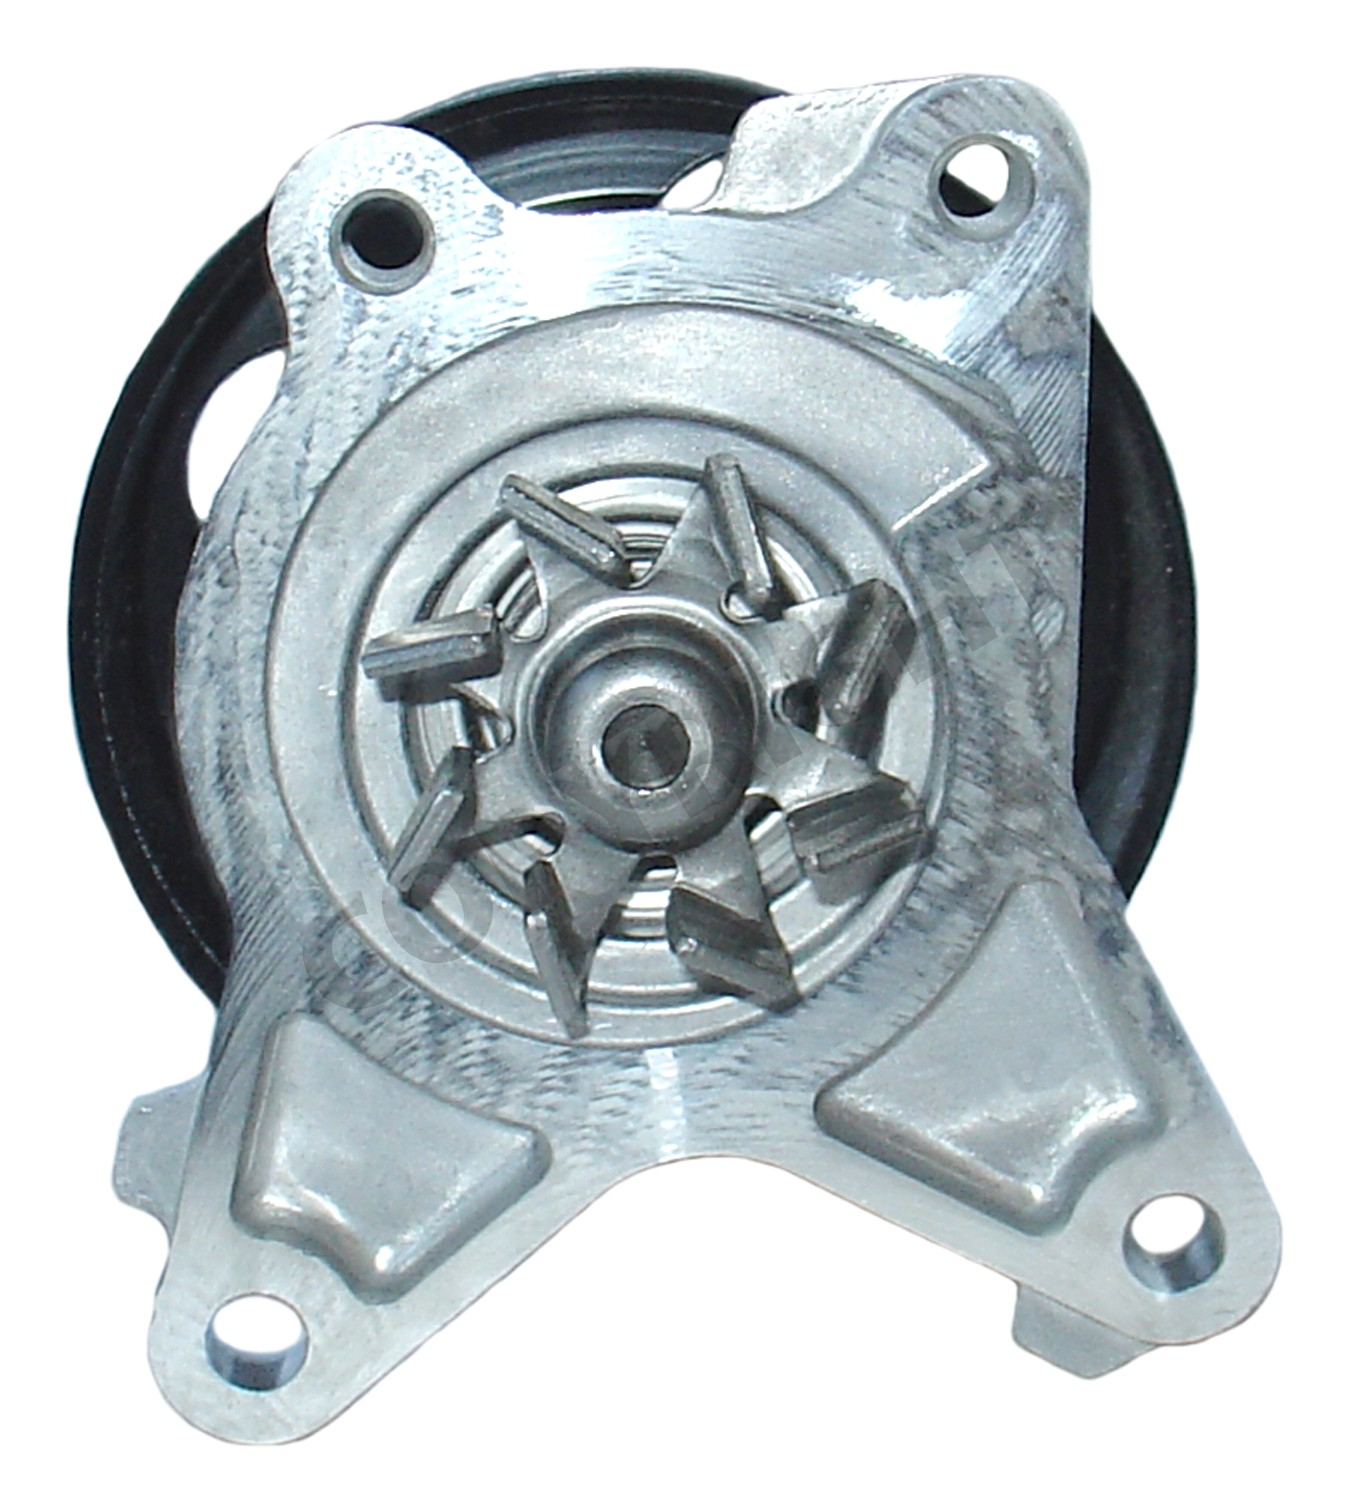 hight resolution of 2012 nissan versa engine water pump aw aw6218